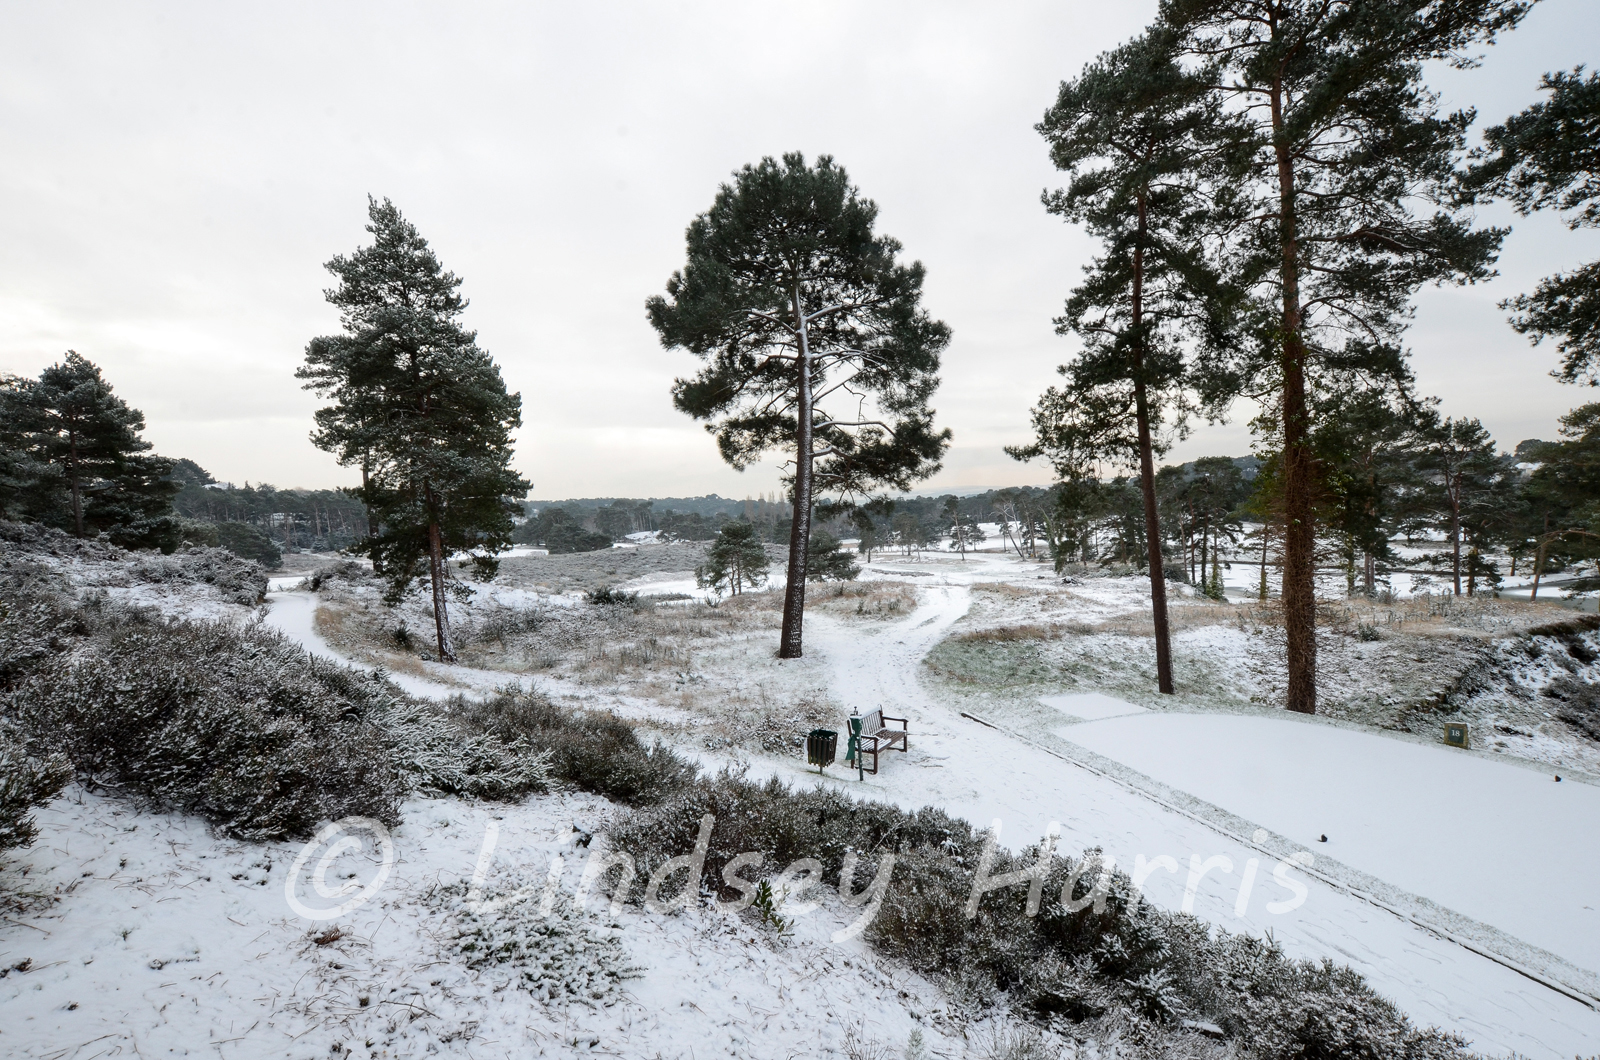 Snow at  Parkstone Golf course, Poole, Dorset. February 3rd 2015.